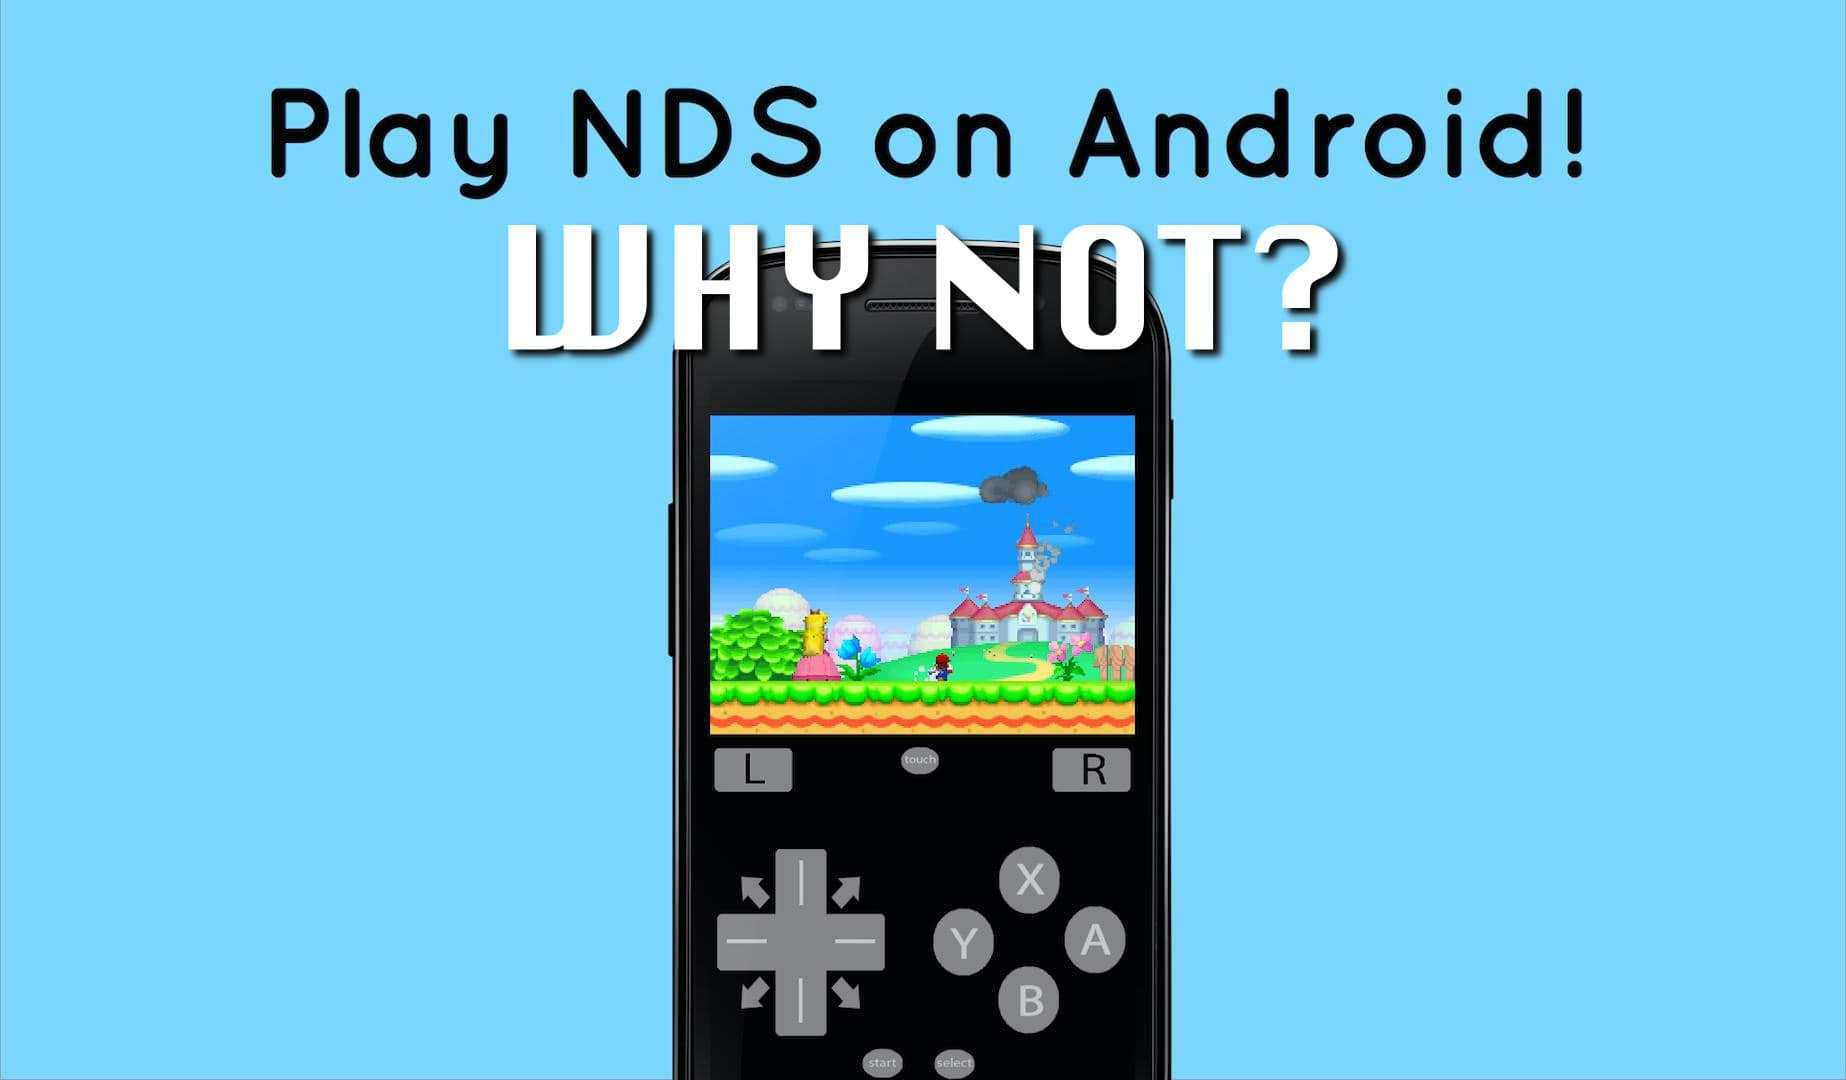 play nds game on Android